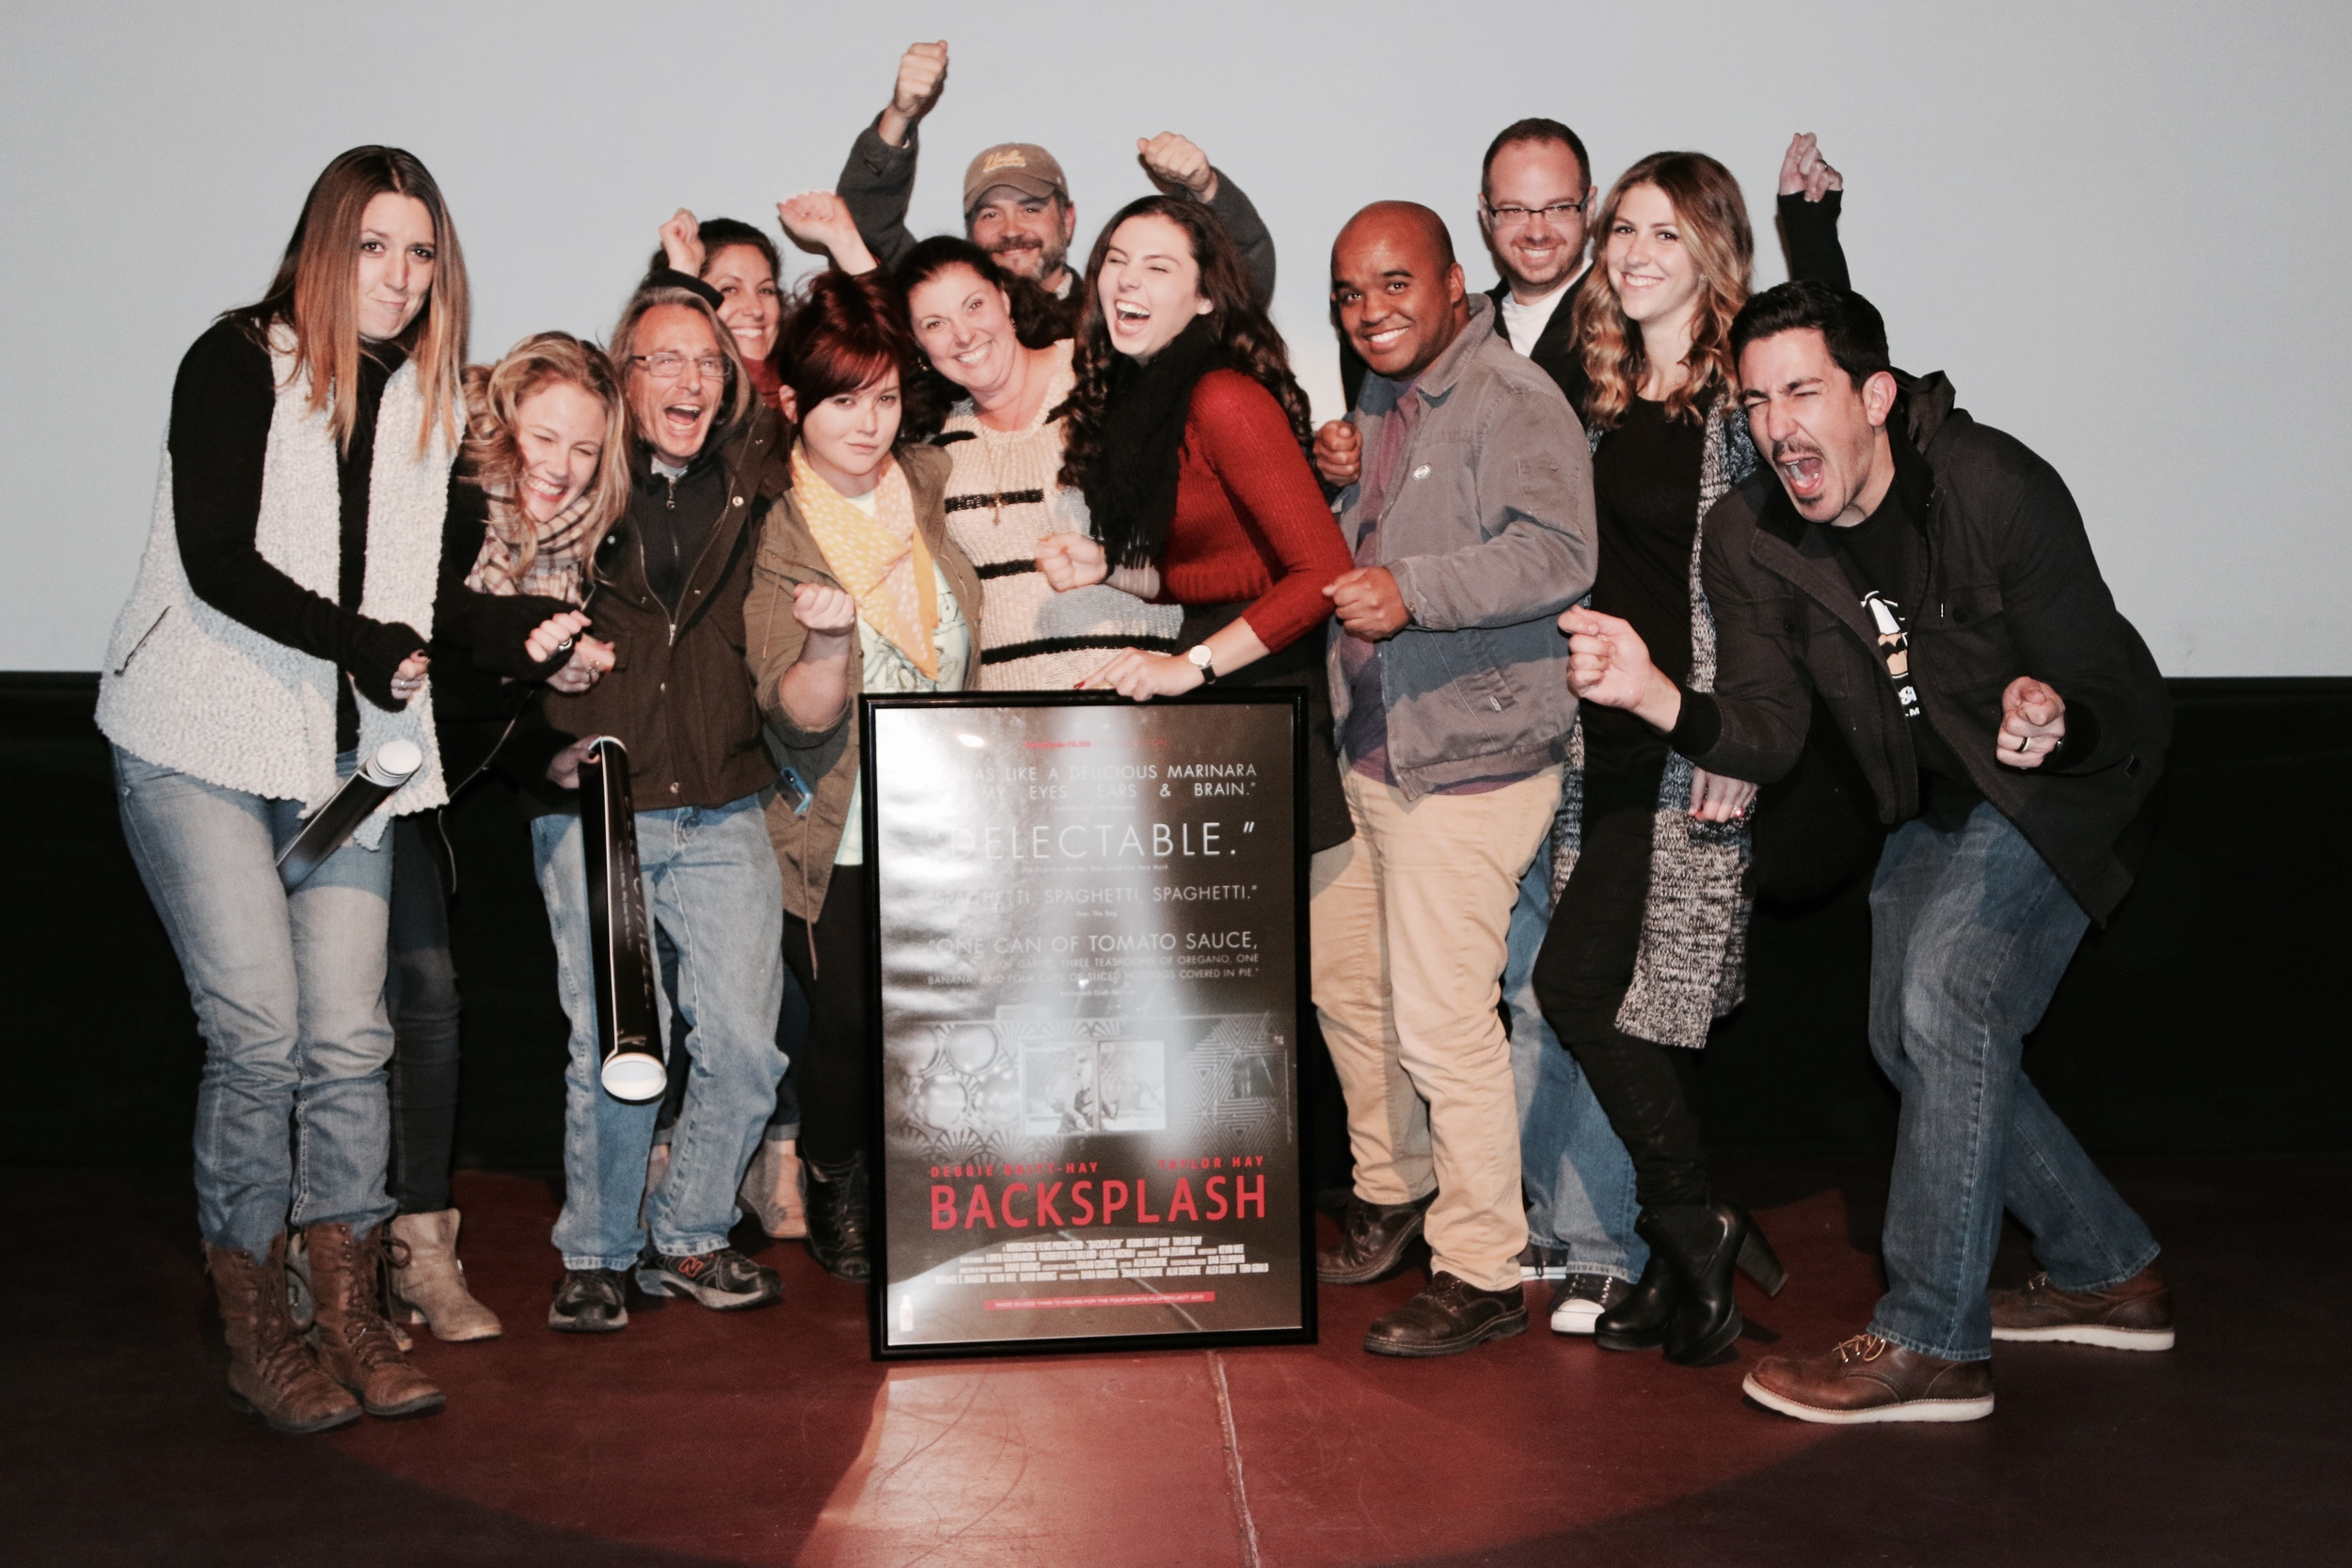 The Backsplash team celebrates on stage after our premier at Cinema Under The Stars in San Diego, California on December 16, 2015 (Photo: Kim Zelikman)